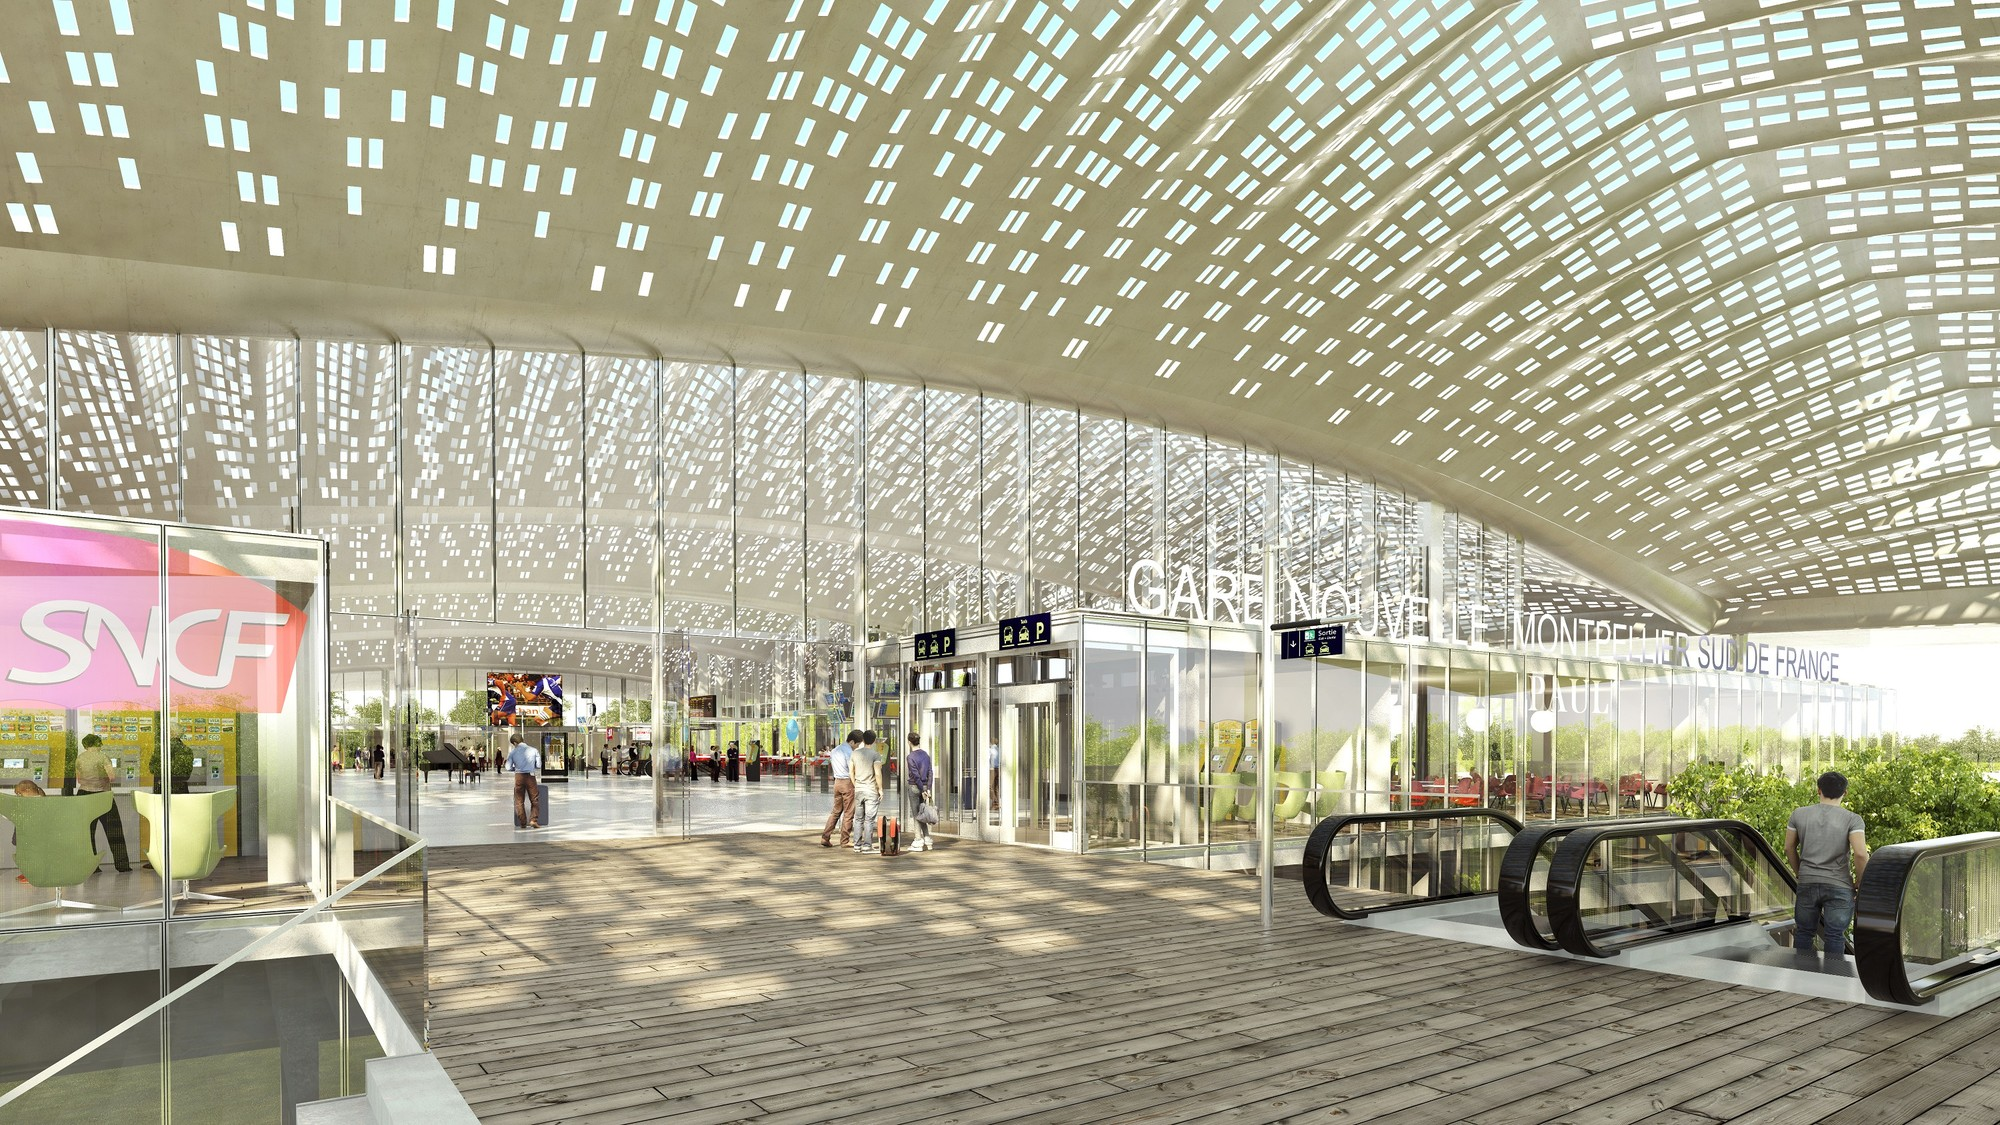 Marc mimram reveals design for new tgv station in for Montpellier architecture